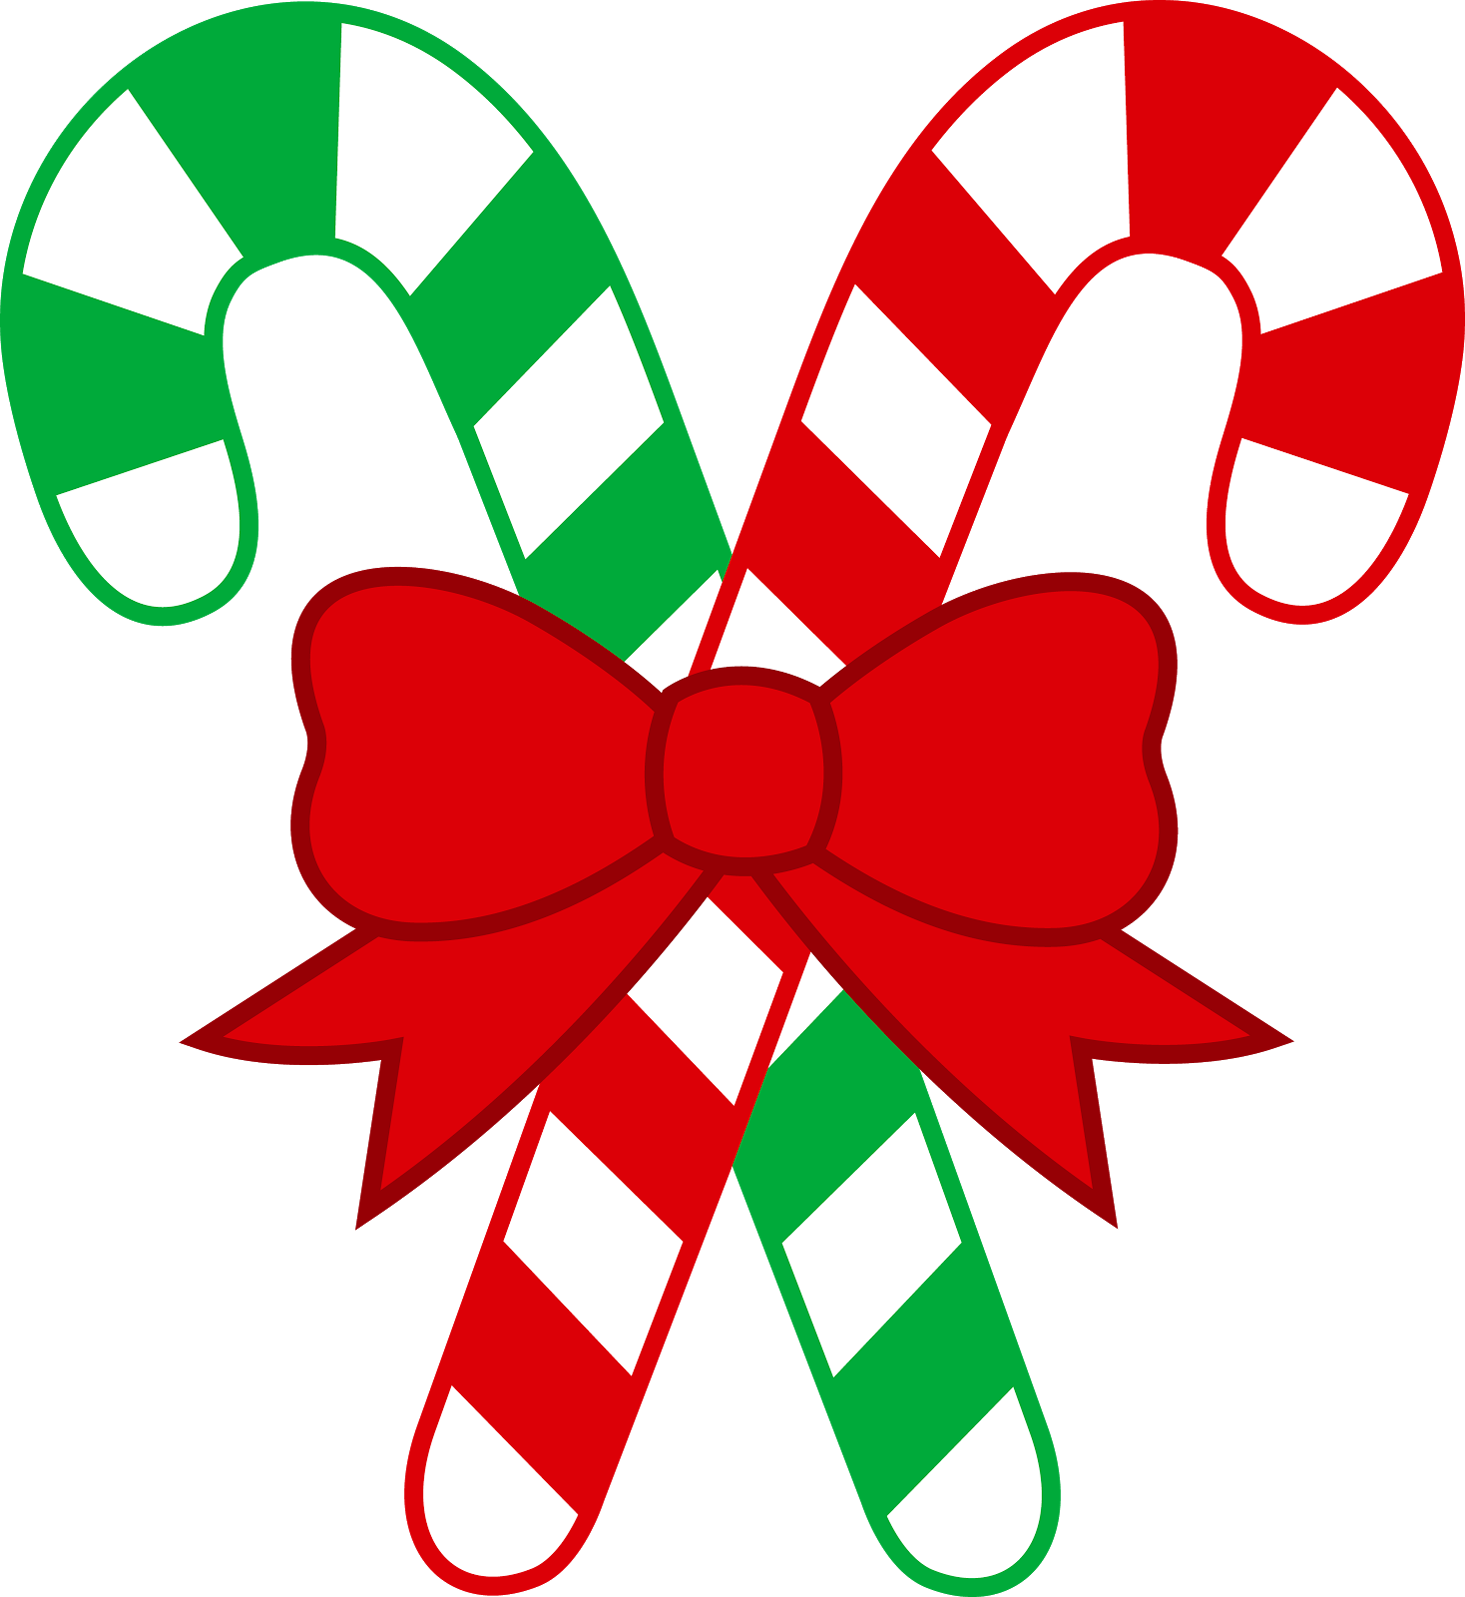 Candy cane clipart vector clip transparent download Red and Green Christmas Transparent PNG Candy Cane Clipart ... clip transparent download